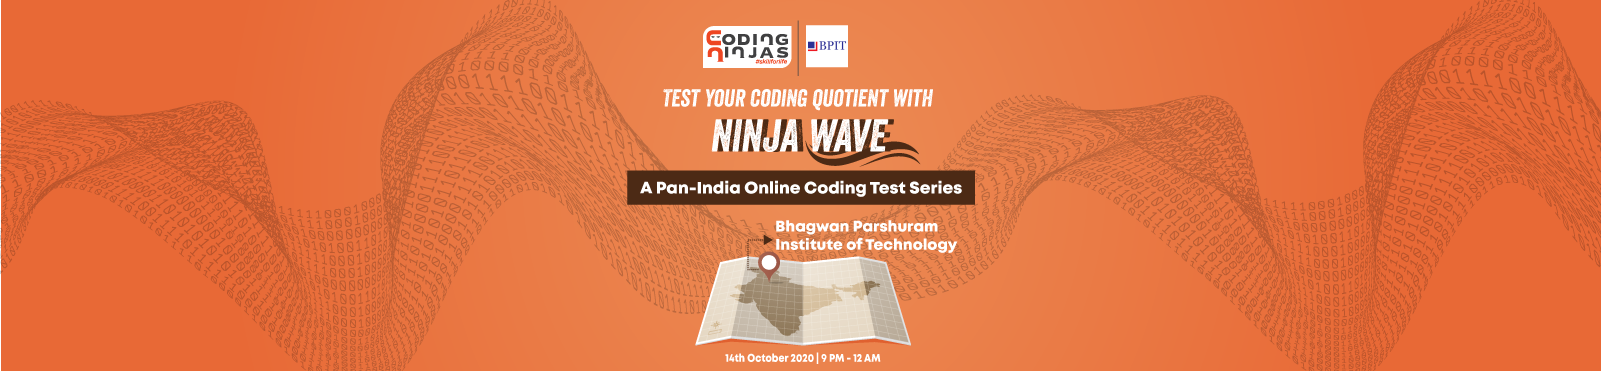 Ninja Wave at Bhagwan Parshuram Institute of Technology